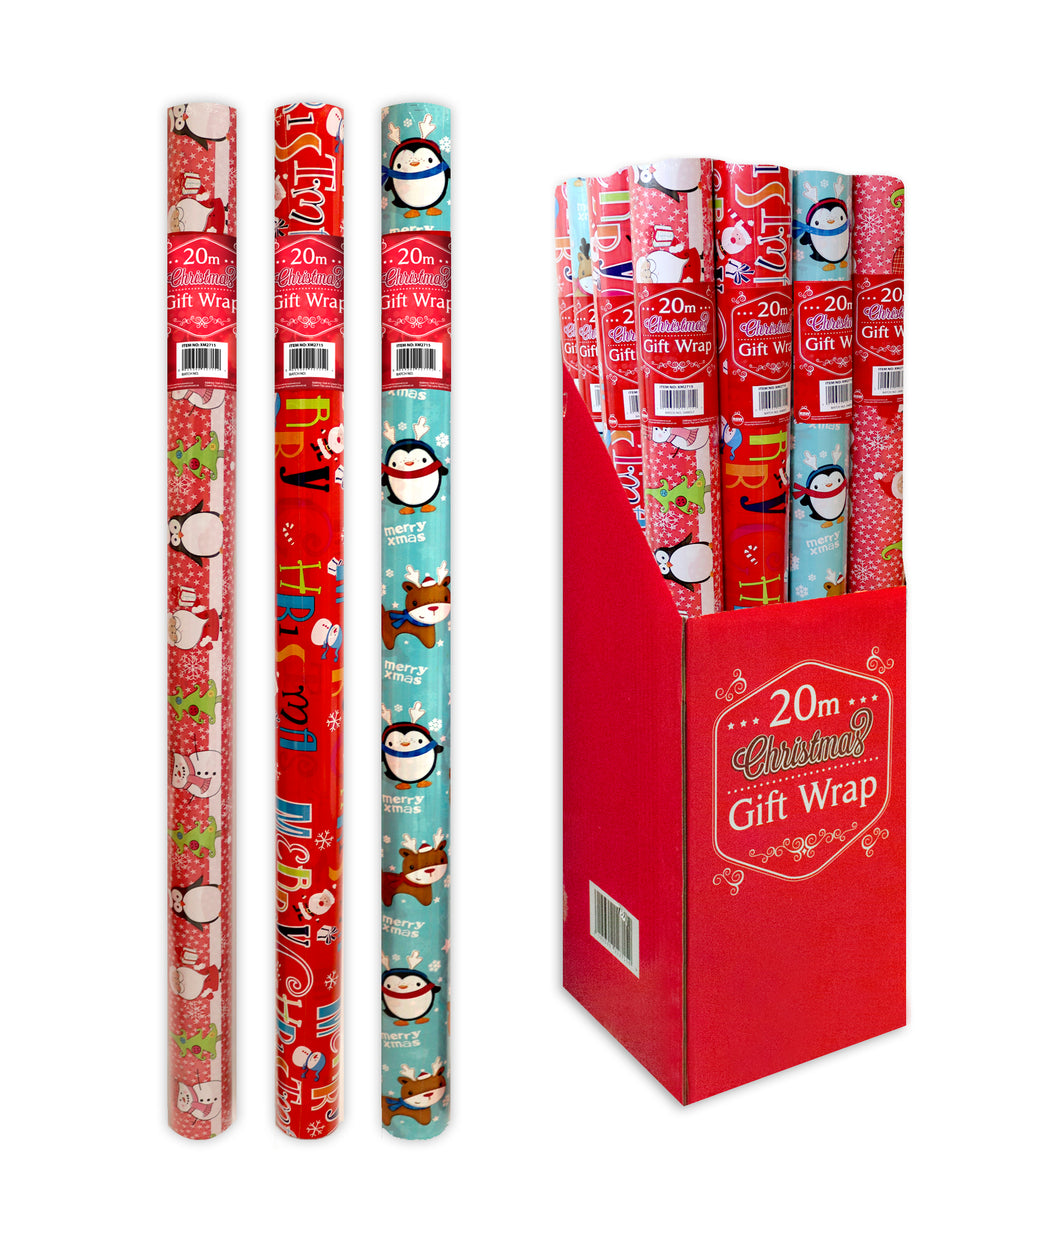 20 metre Christmas Wrapping Paper in 3 assorted designs